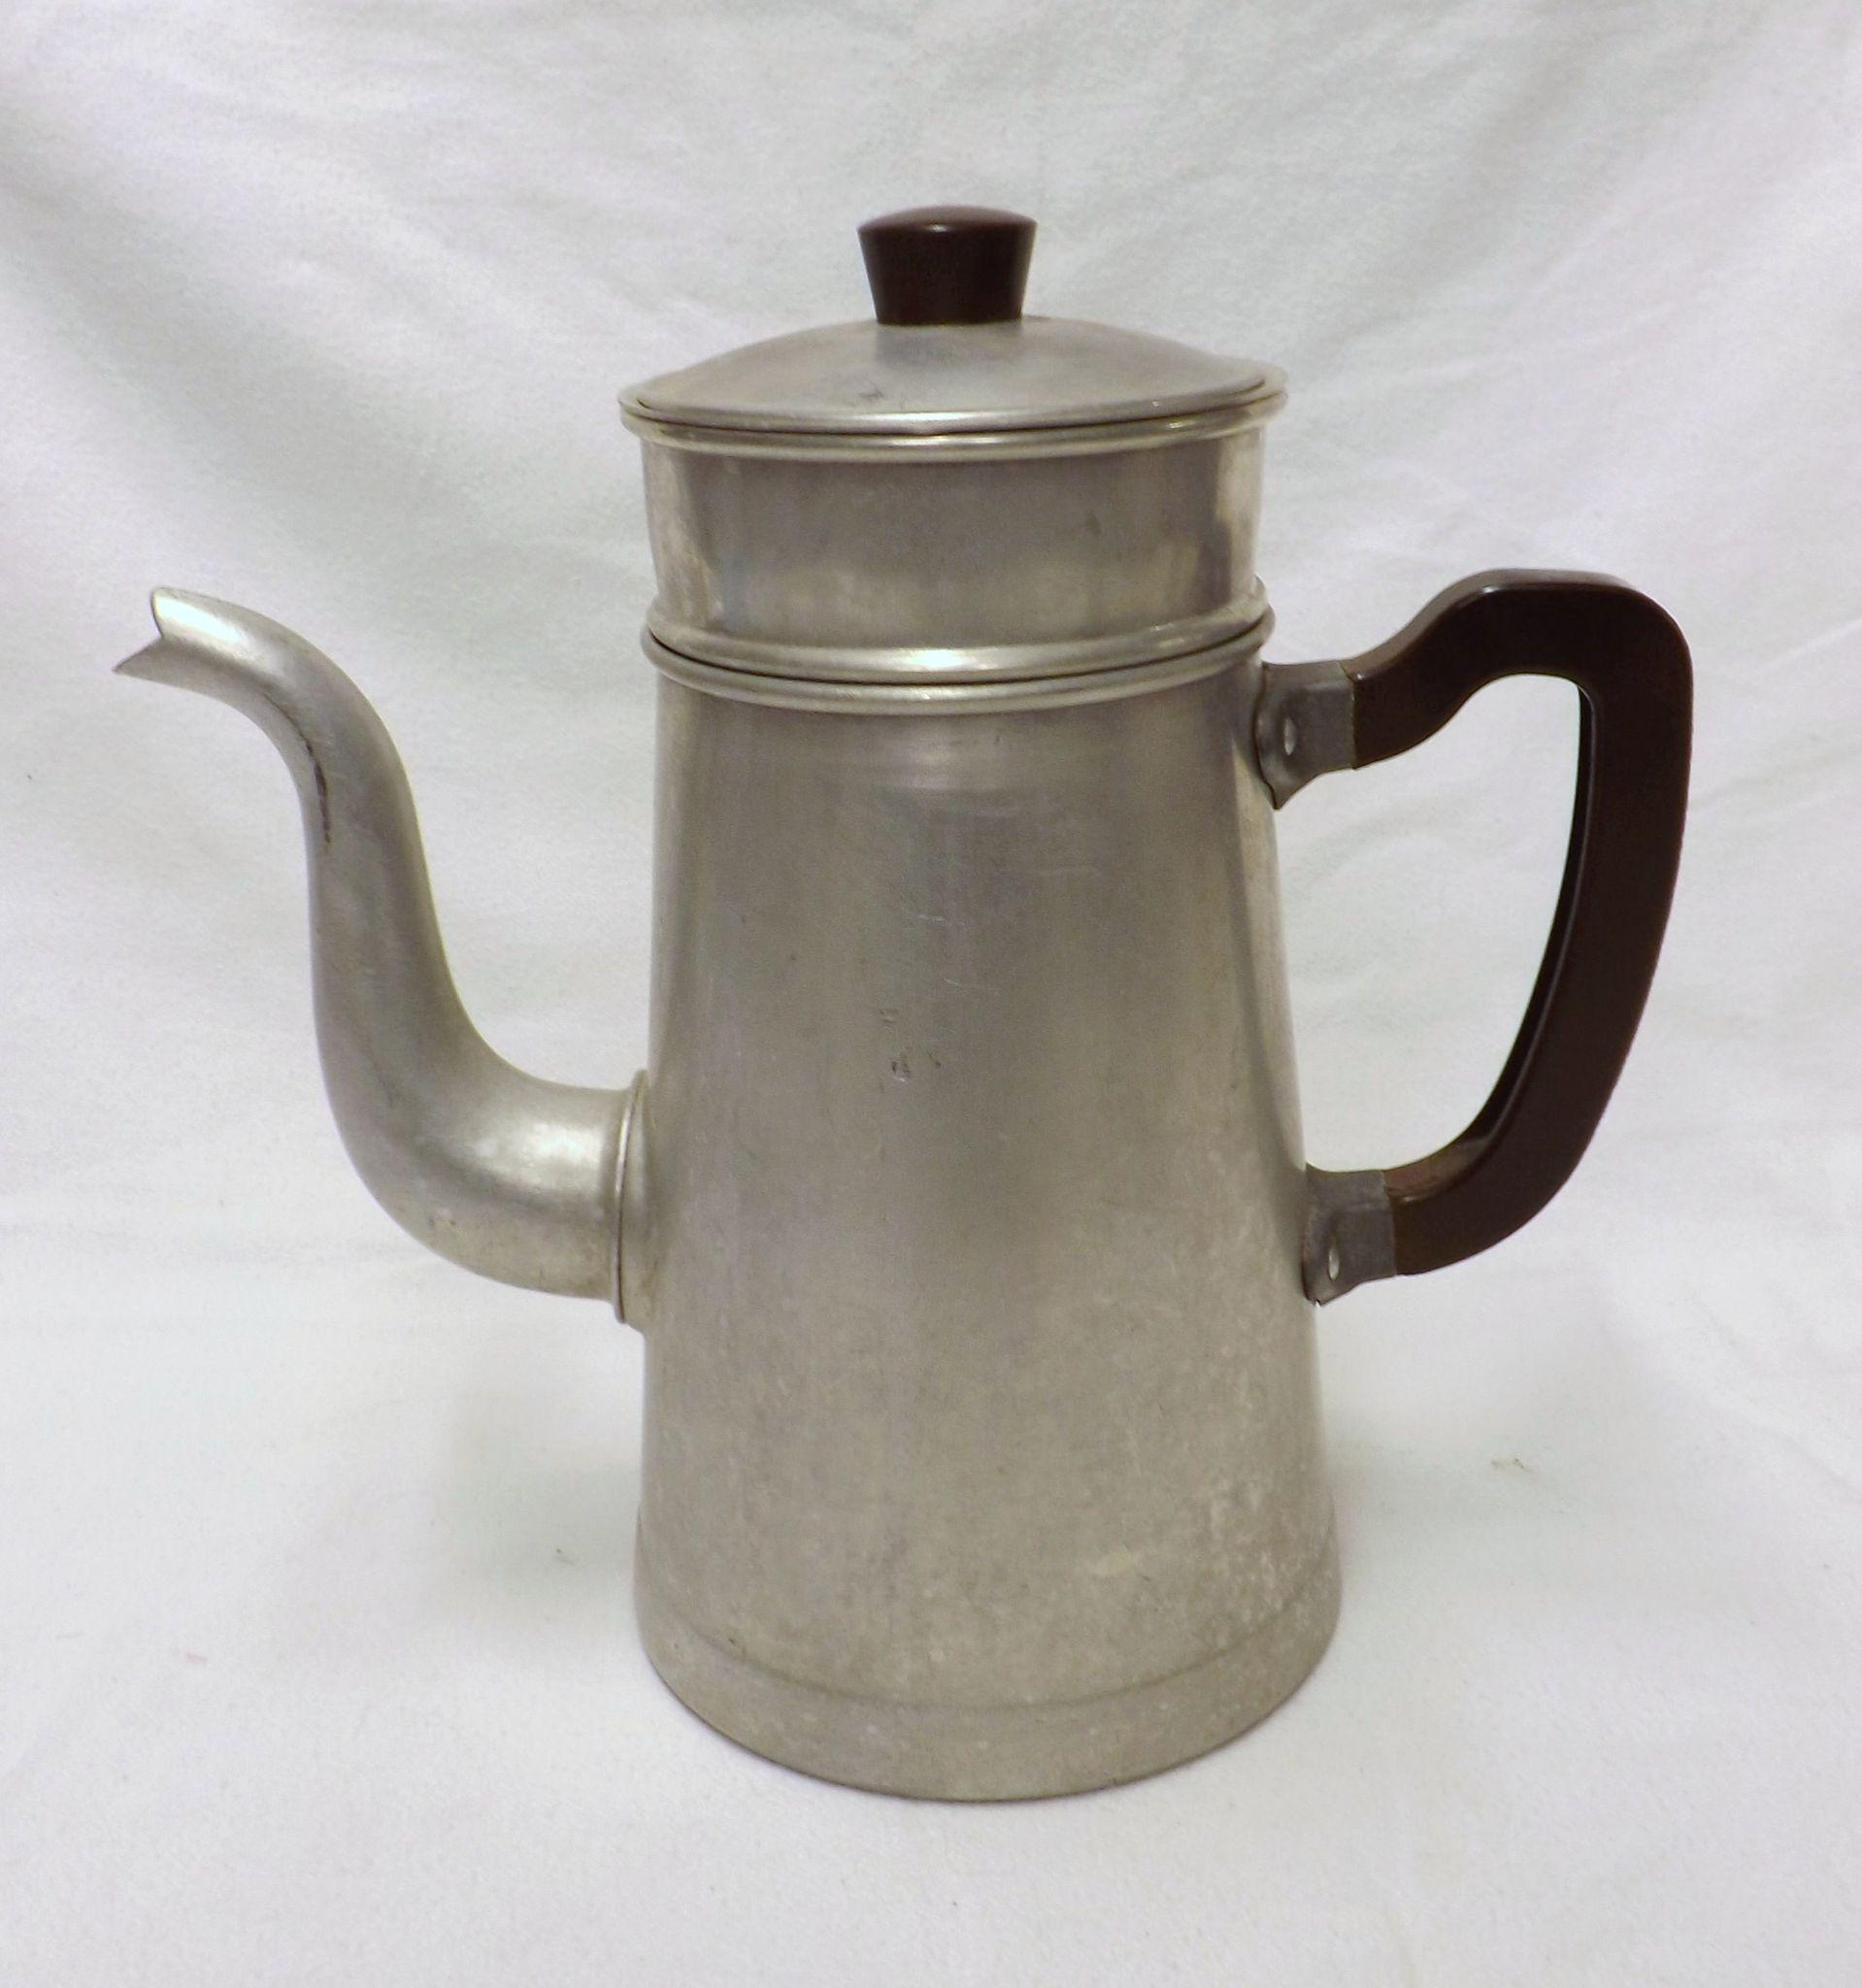 Vintage french stove top coffee percolator circa 1950 39 s for Best coffee percolator